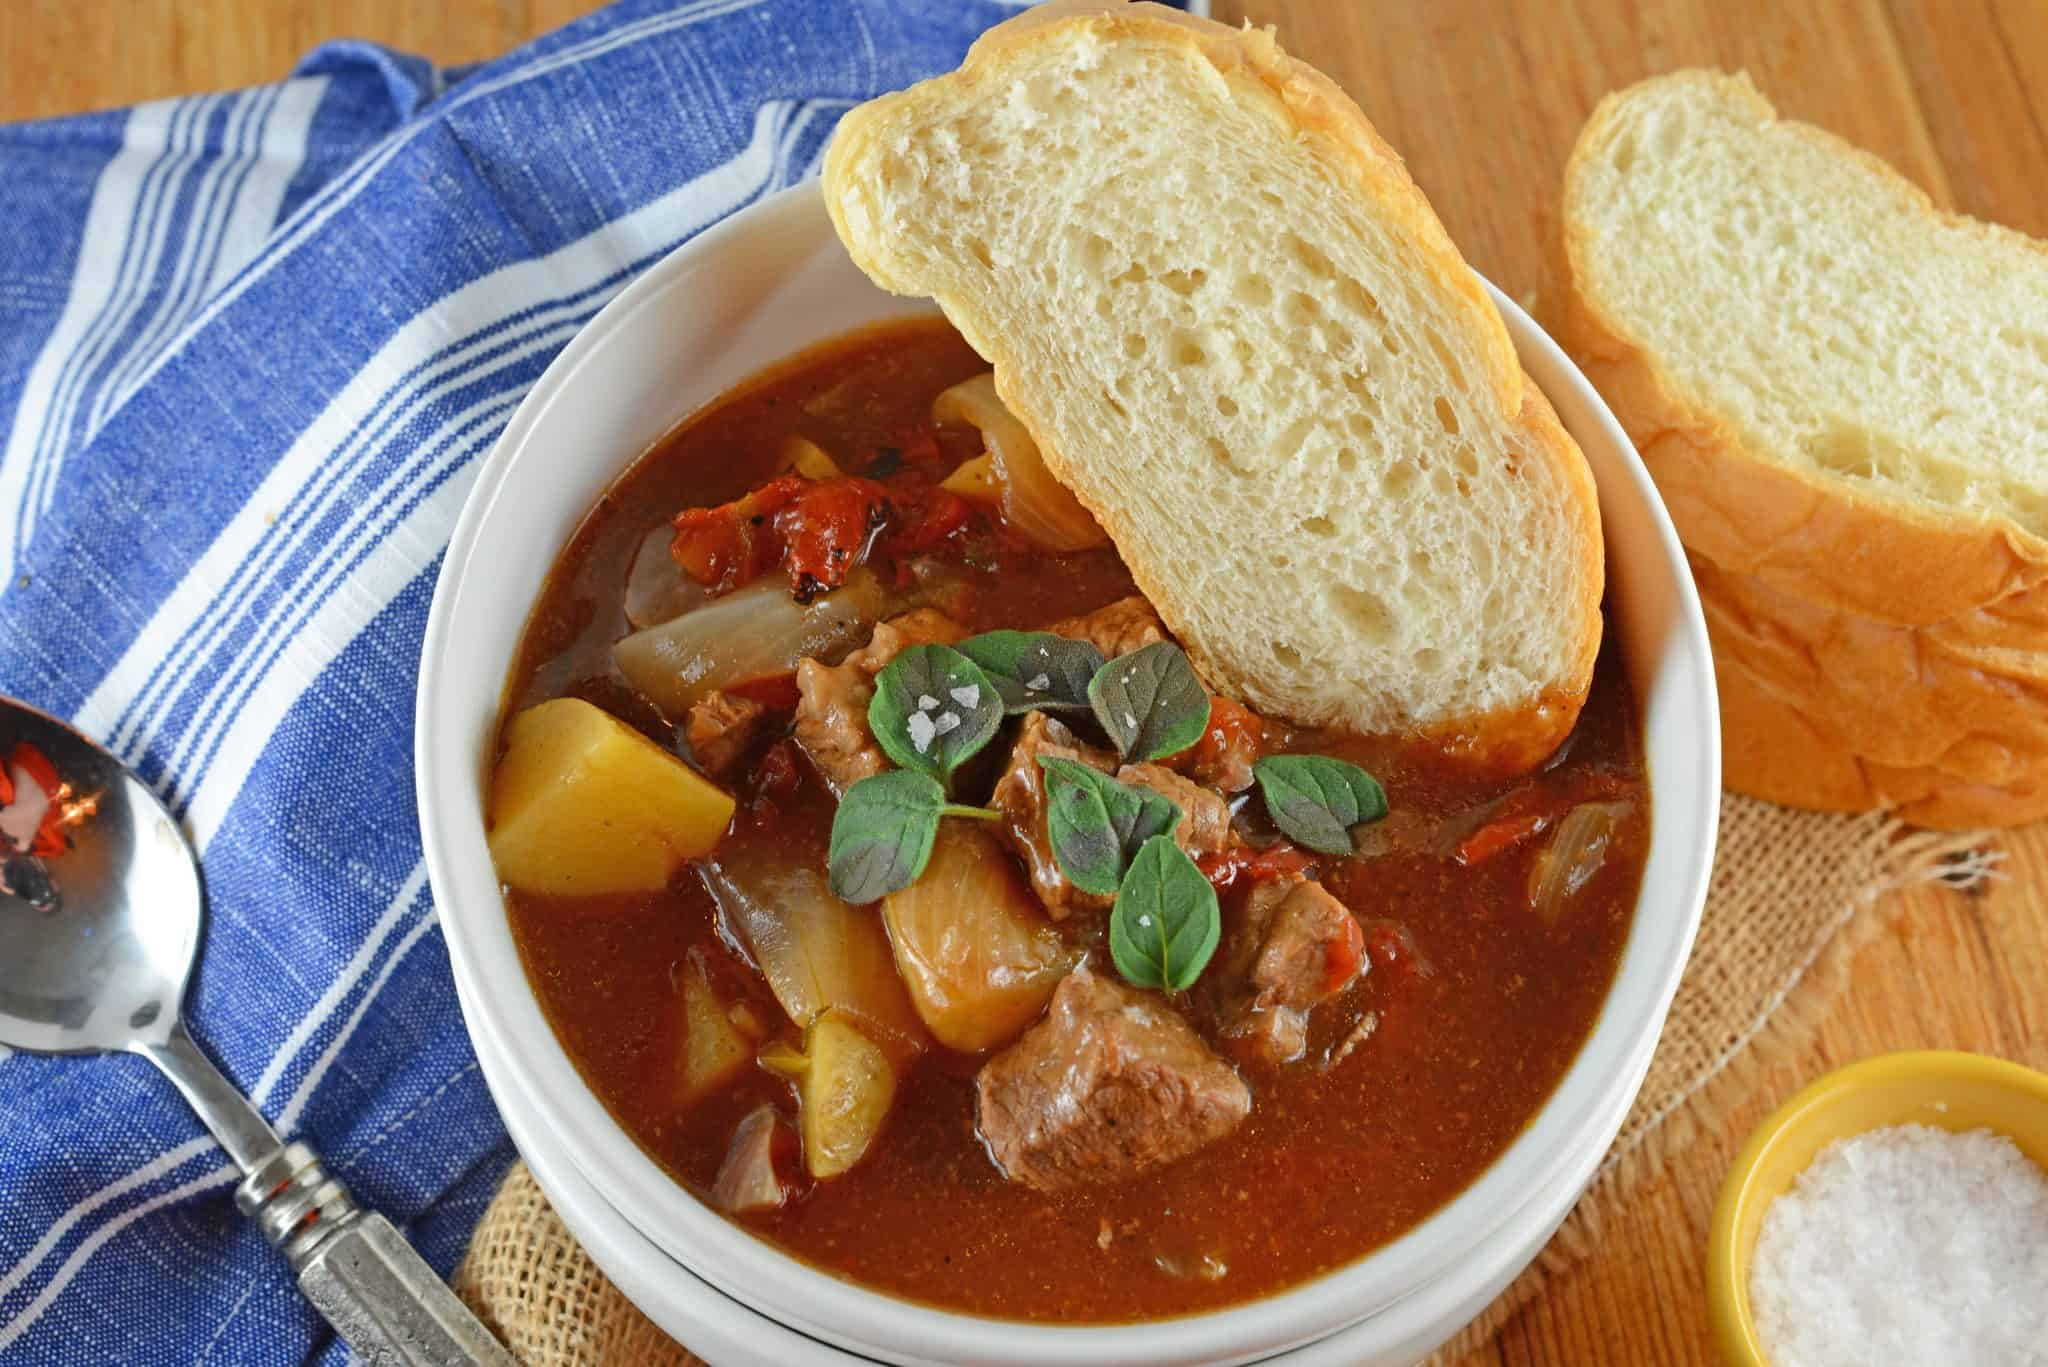 Beef Stew is one of the most iconic comfort foods and this version features tender beef, onions, potatoes, fire roasted tomatoes in a rich herb filled stew. This recipe can be made in the slow cooker or Dutch oven.